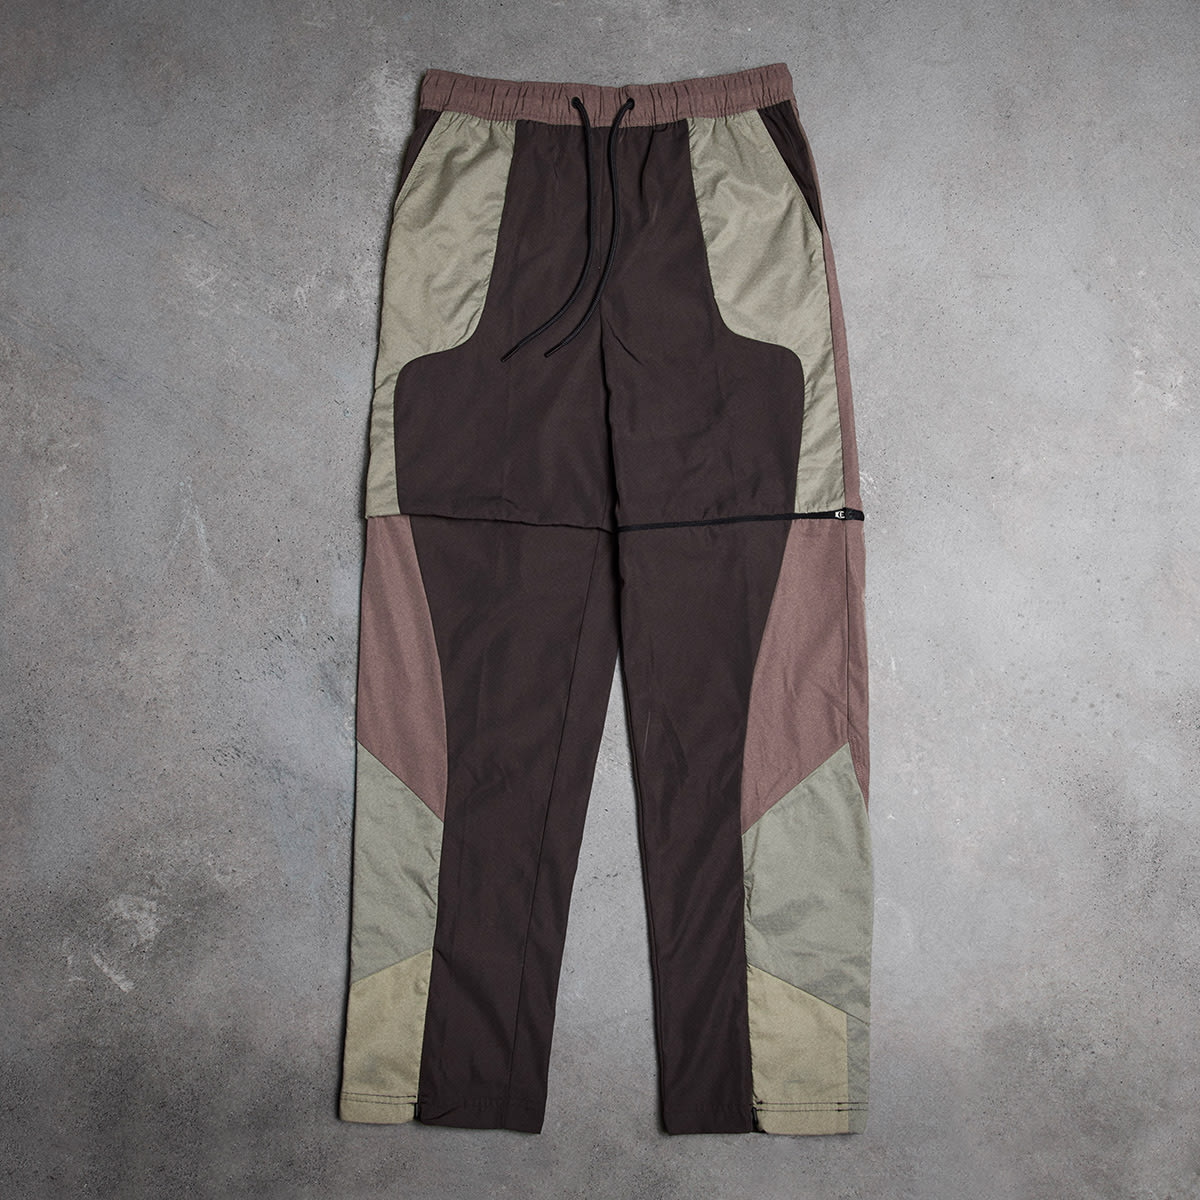 Converse x A-COLD-WALL* Track Pant - 10019284-A01